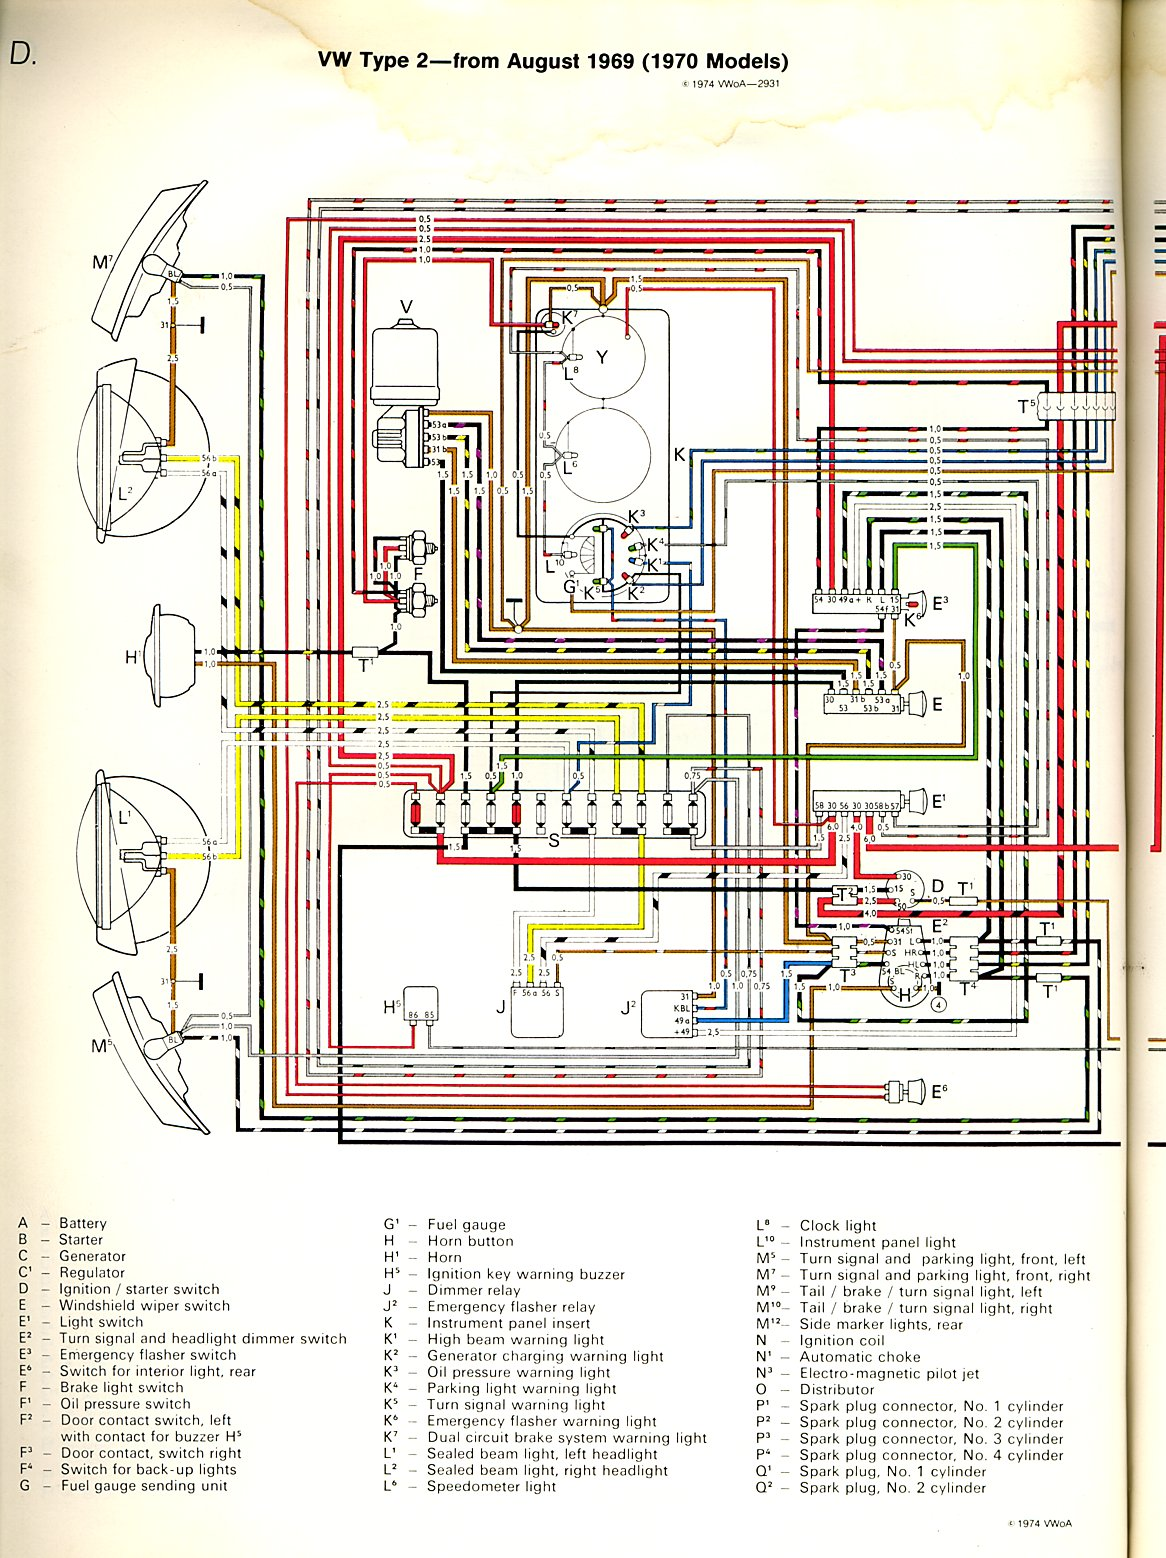 baybus_70a bus wiring diagram vw wiring harness diagram \u2022 wiring diagrams j 1971 vw bus wiring diagram at crackthecode.co